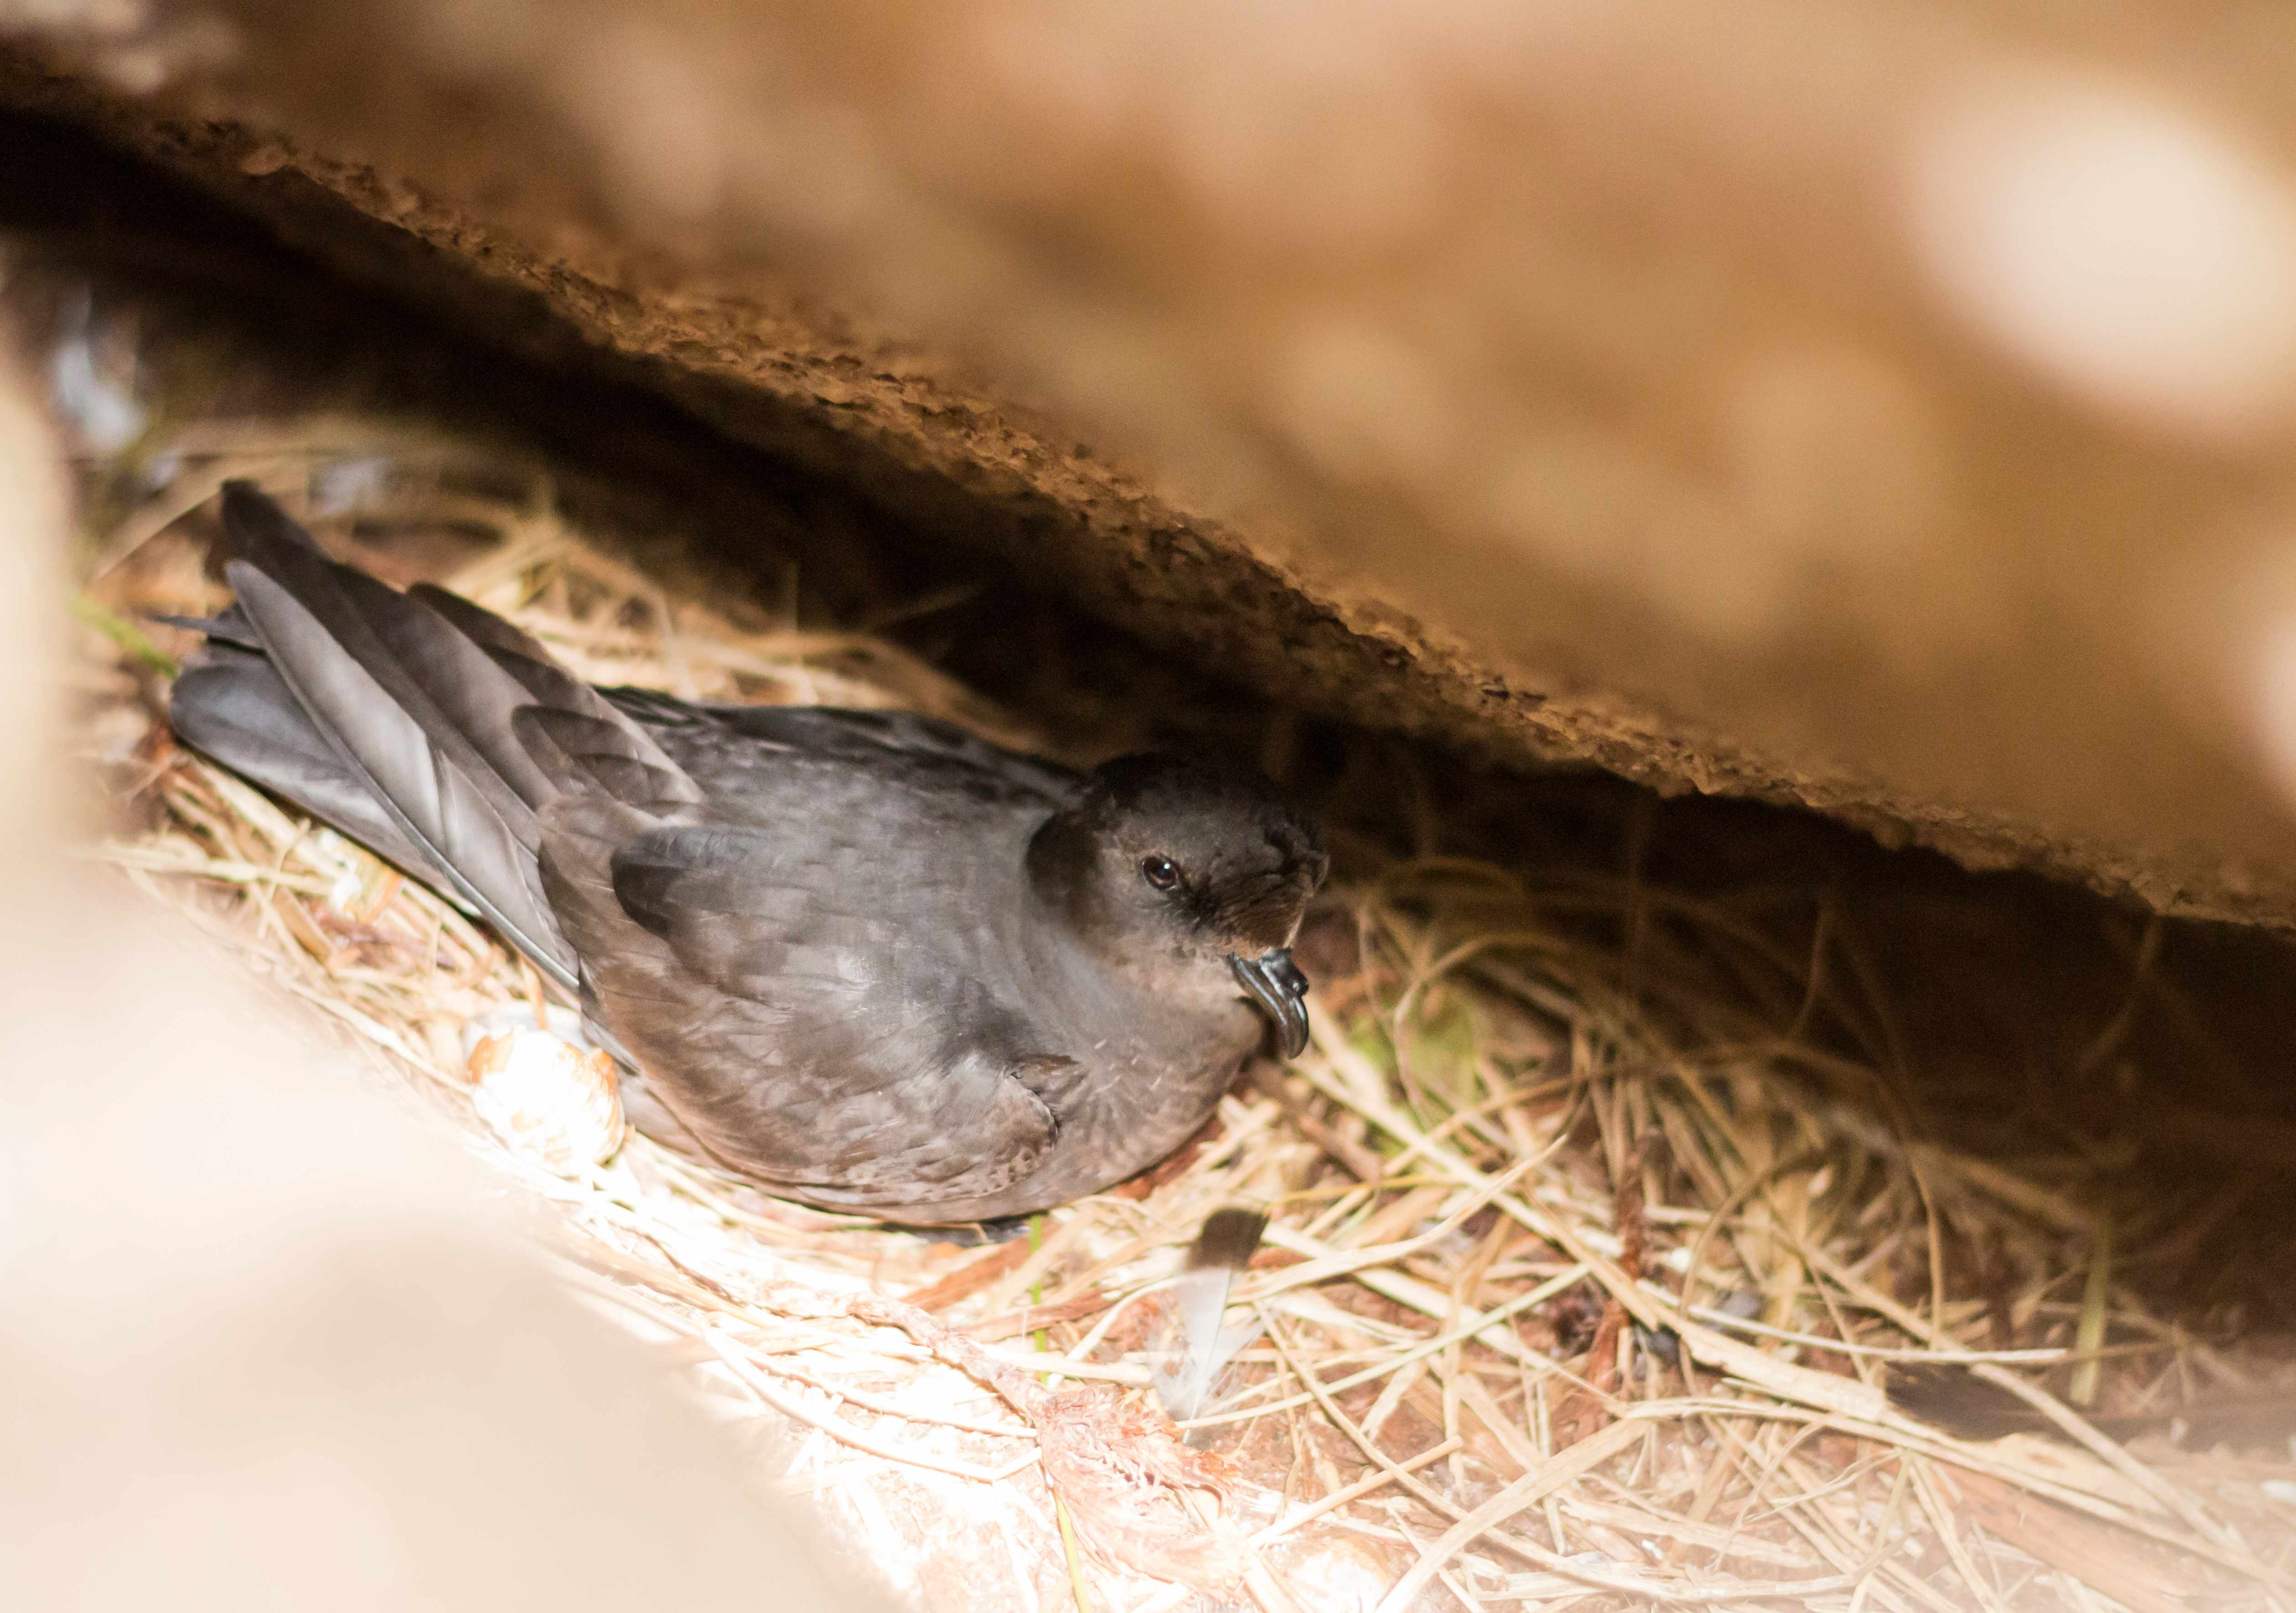 Storm petrel Hydrobates pelagicus, adult sitting on nest beneath a large boulder, Isles of Scilly, UK, June. © Ed Marshall